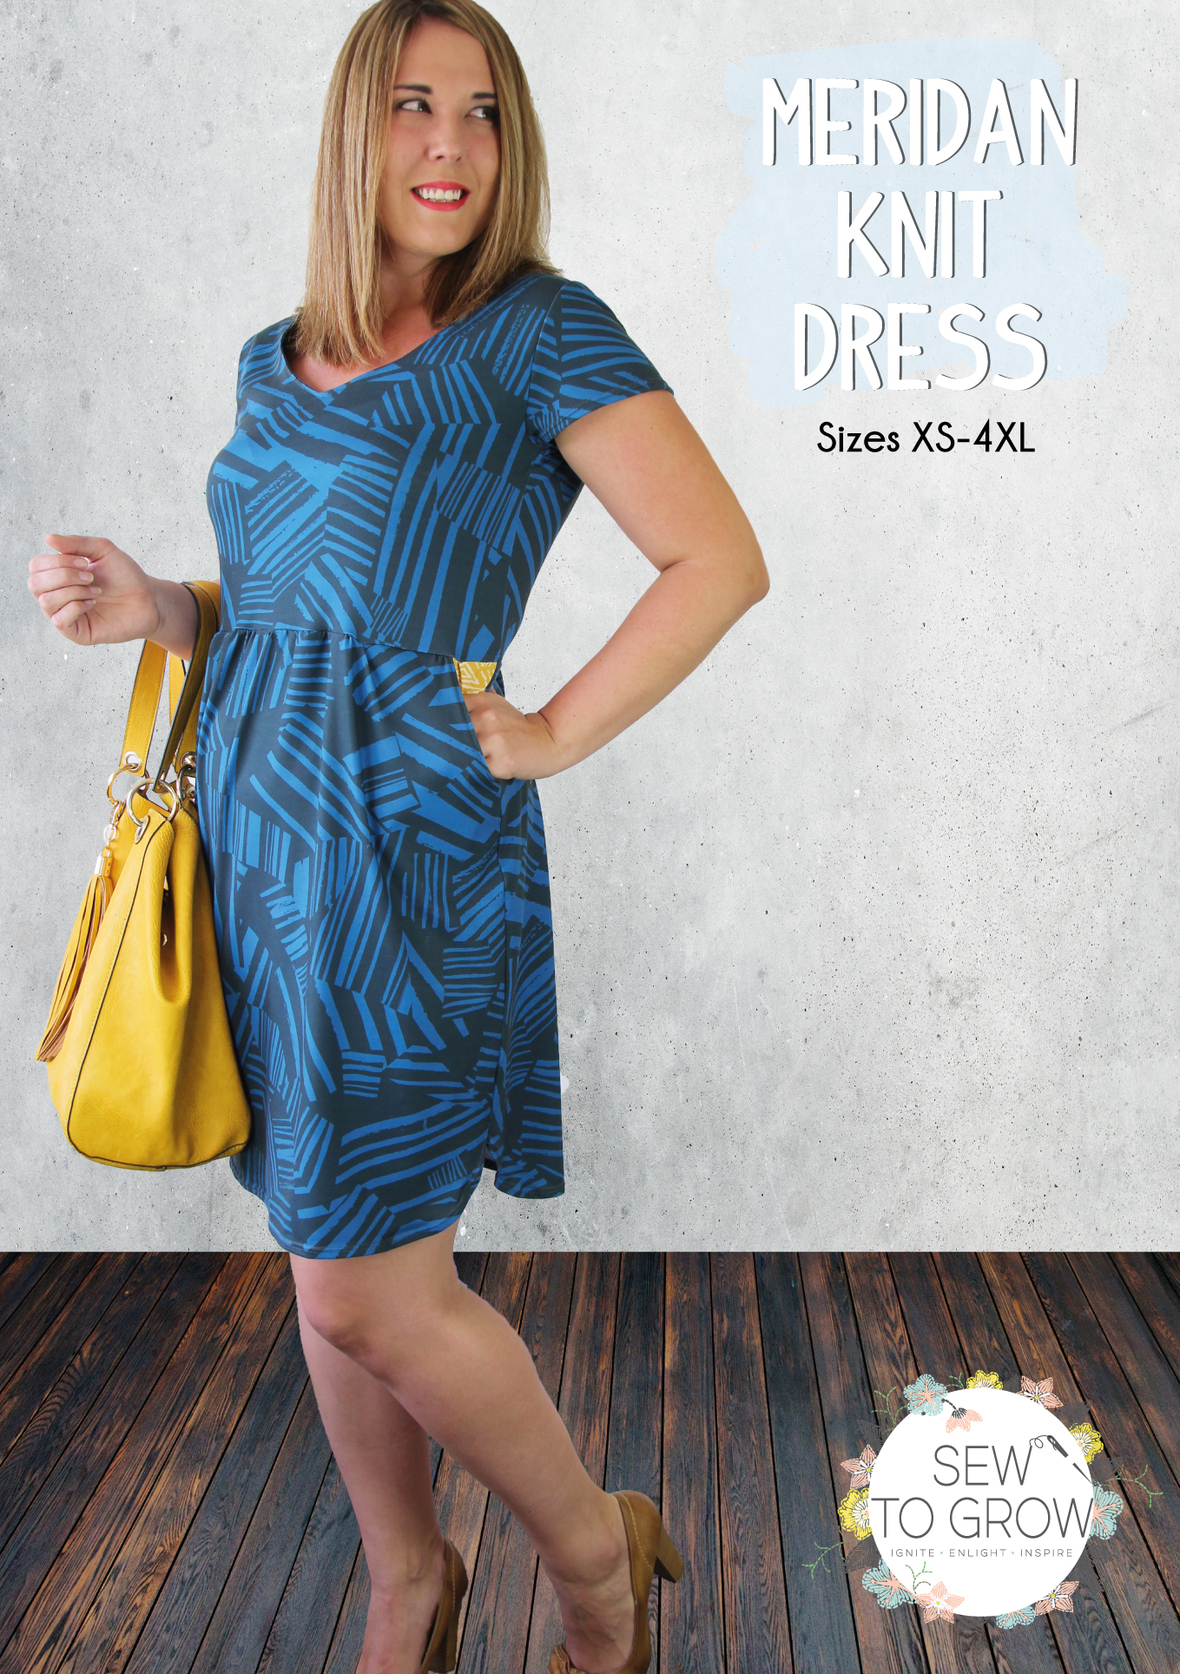 Copy of Meridan Knit Dress Front Cover